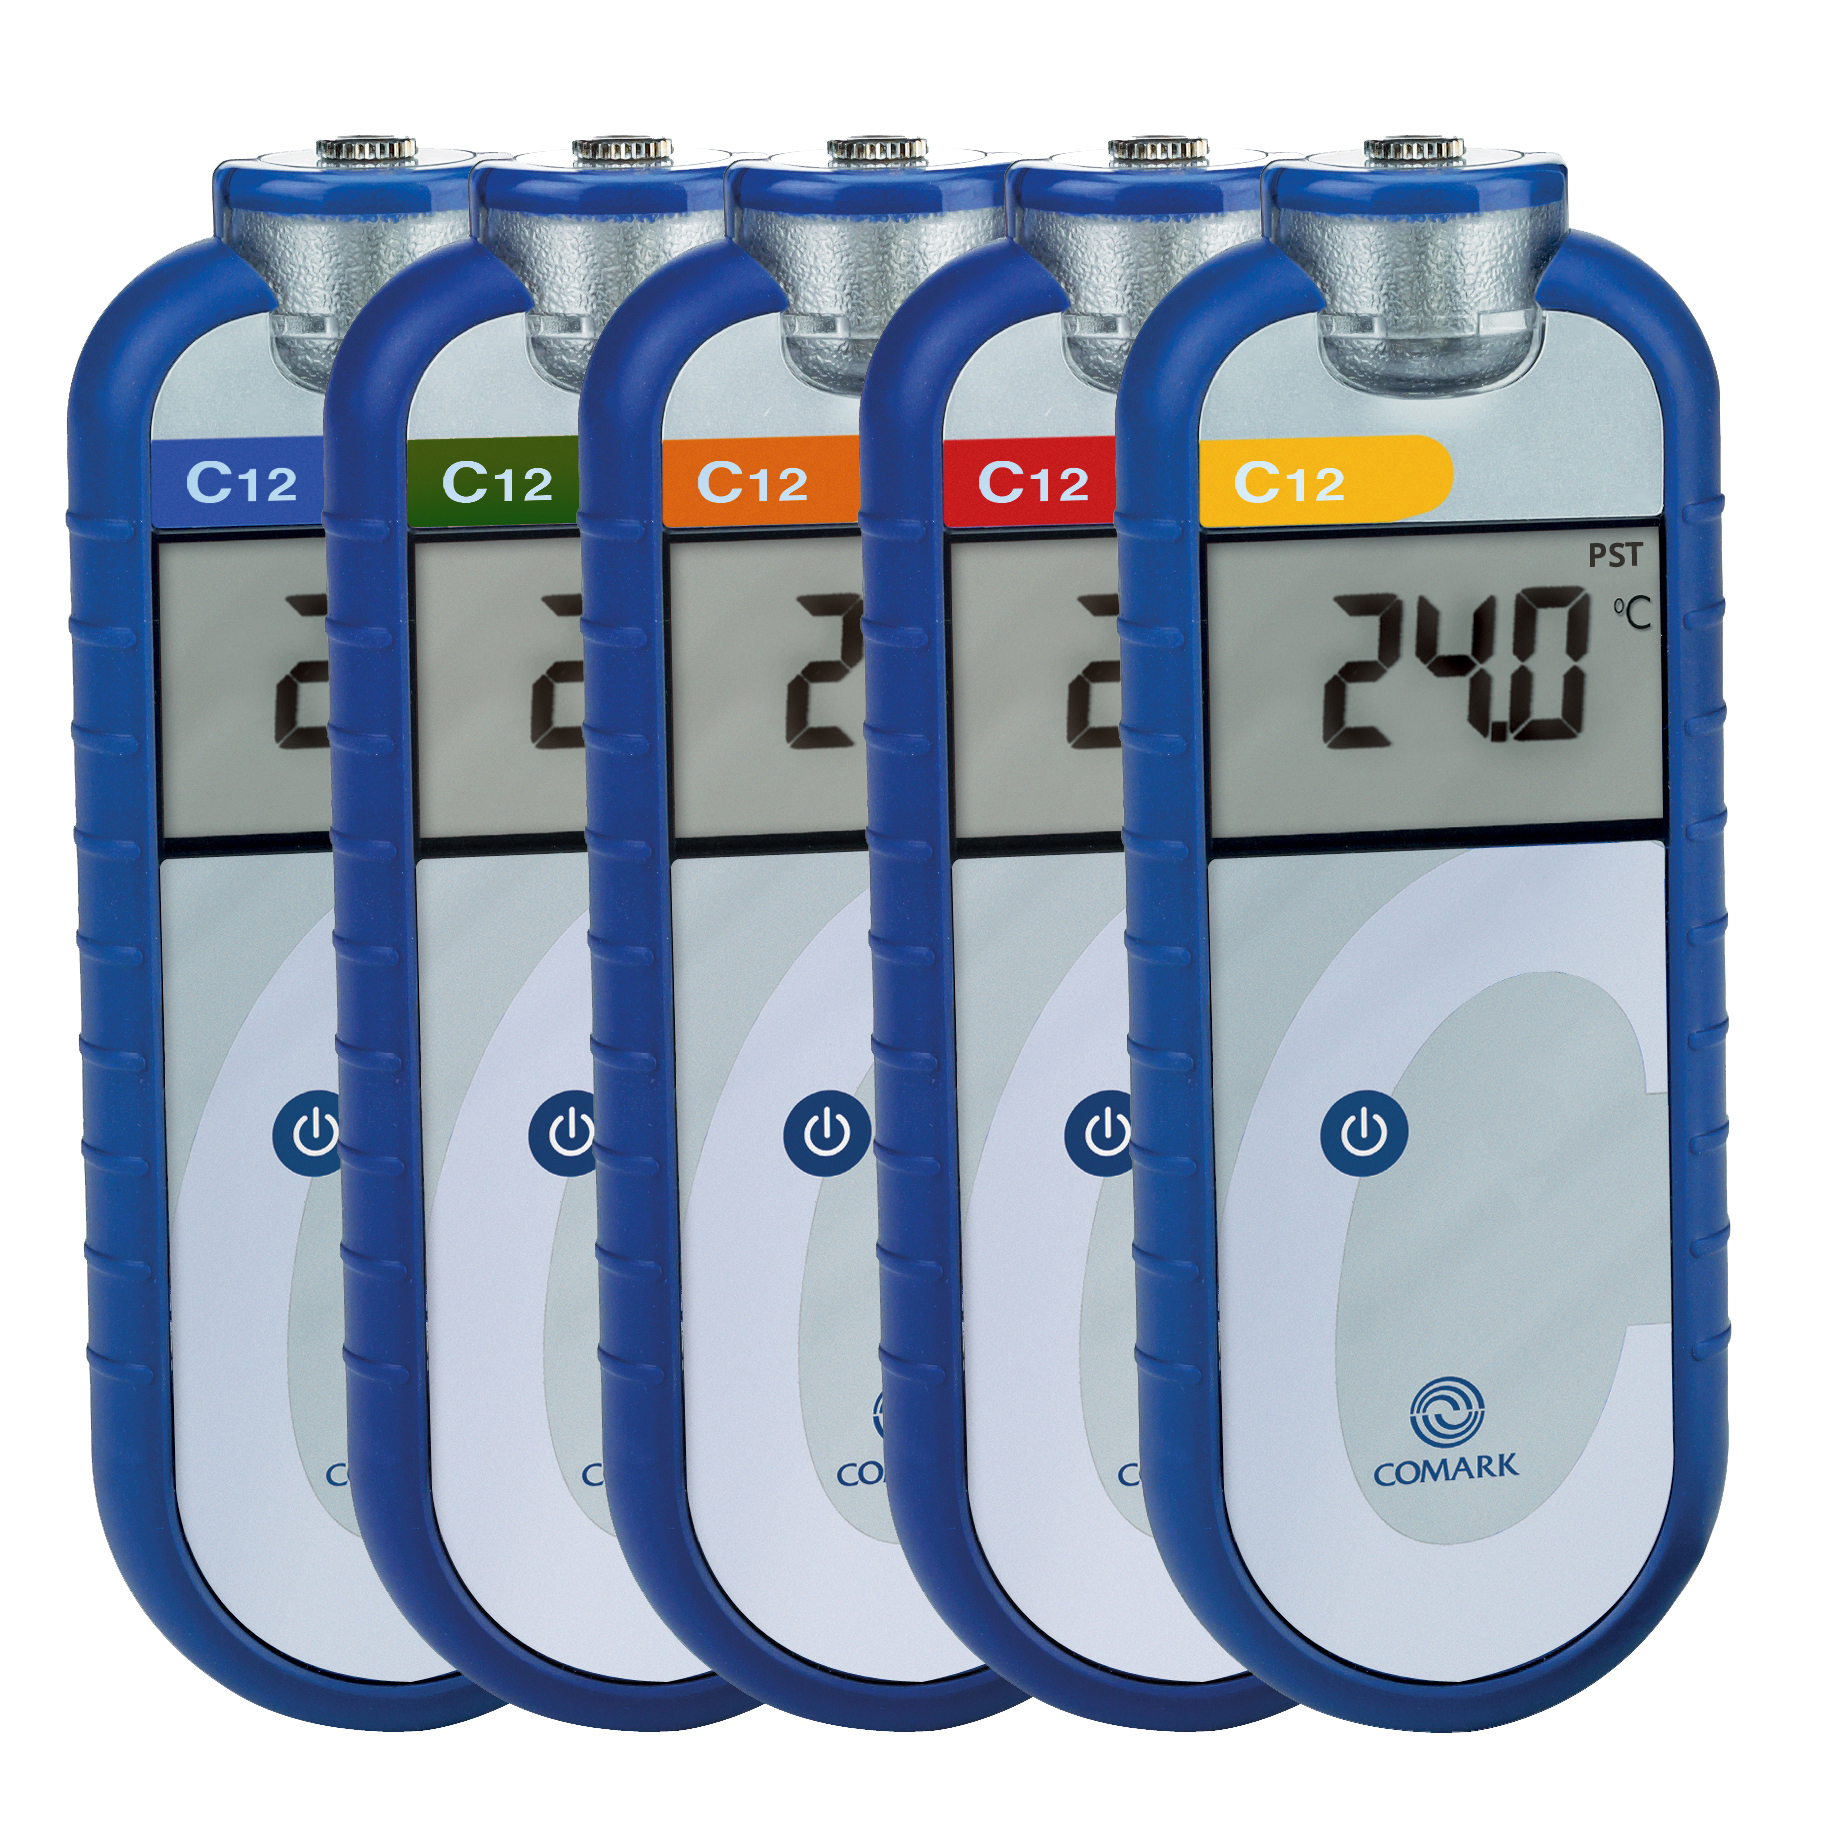 HACCP Food Thermometer C12 from Comark